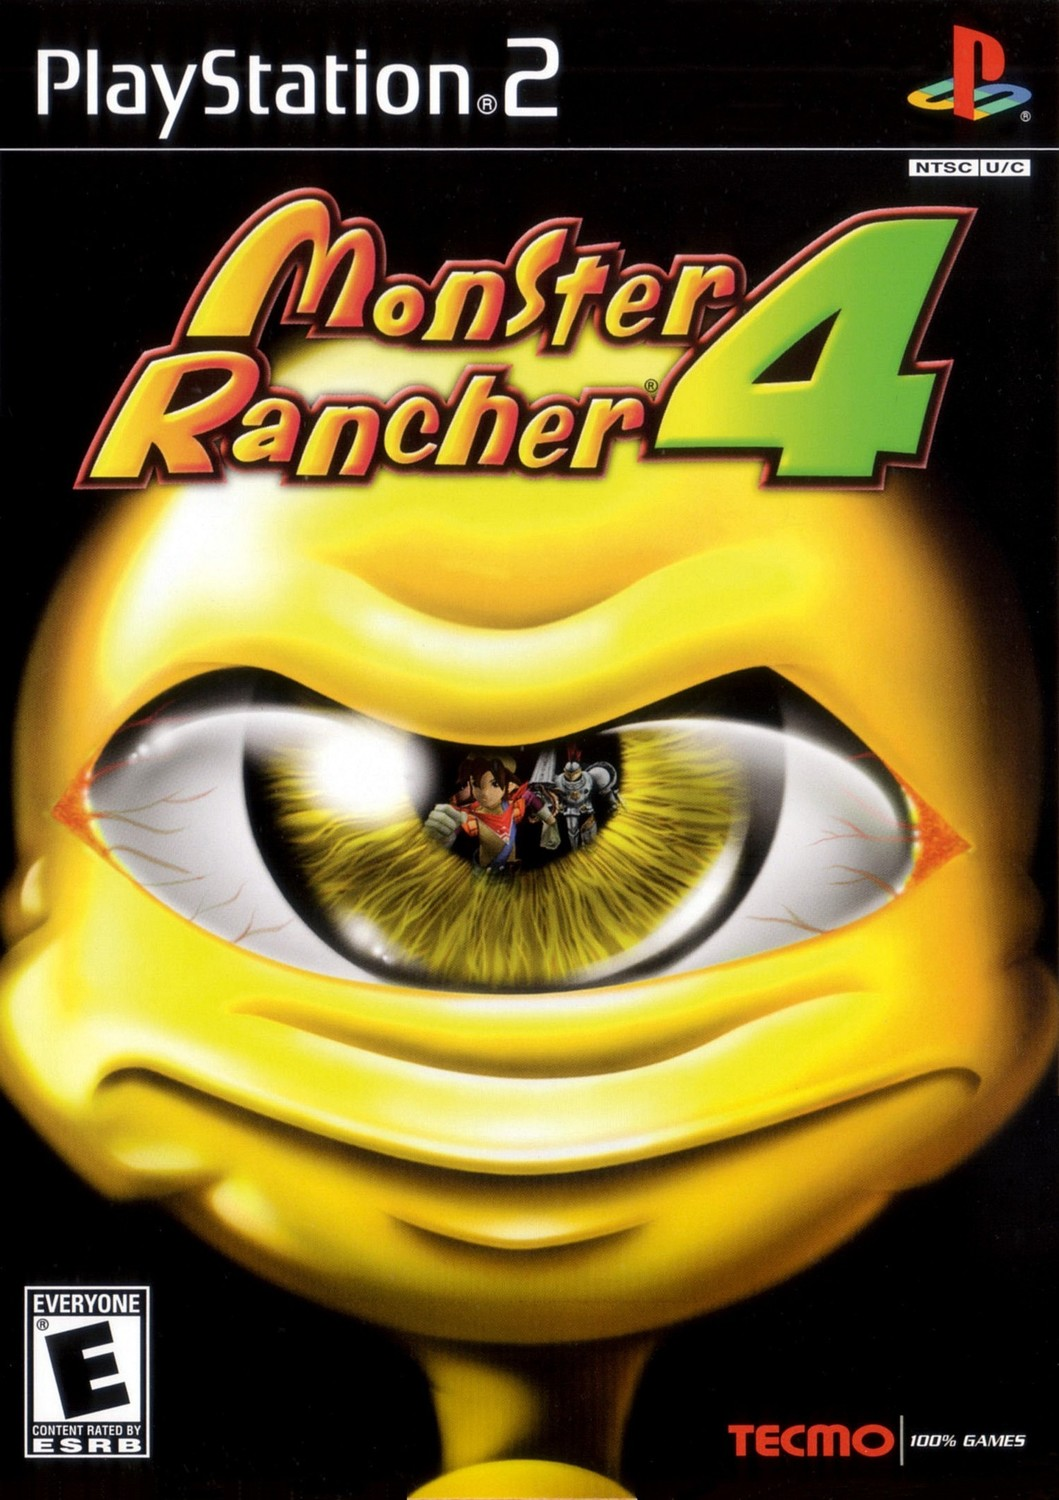 Monster Rancher 4 - Playstation 2: PS2 game